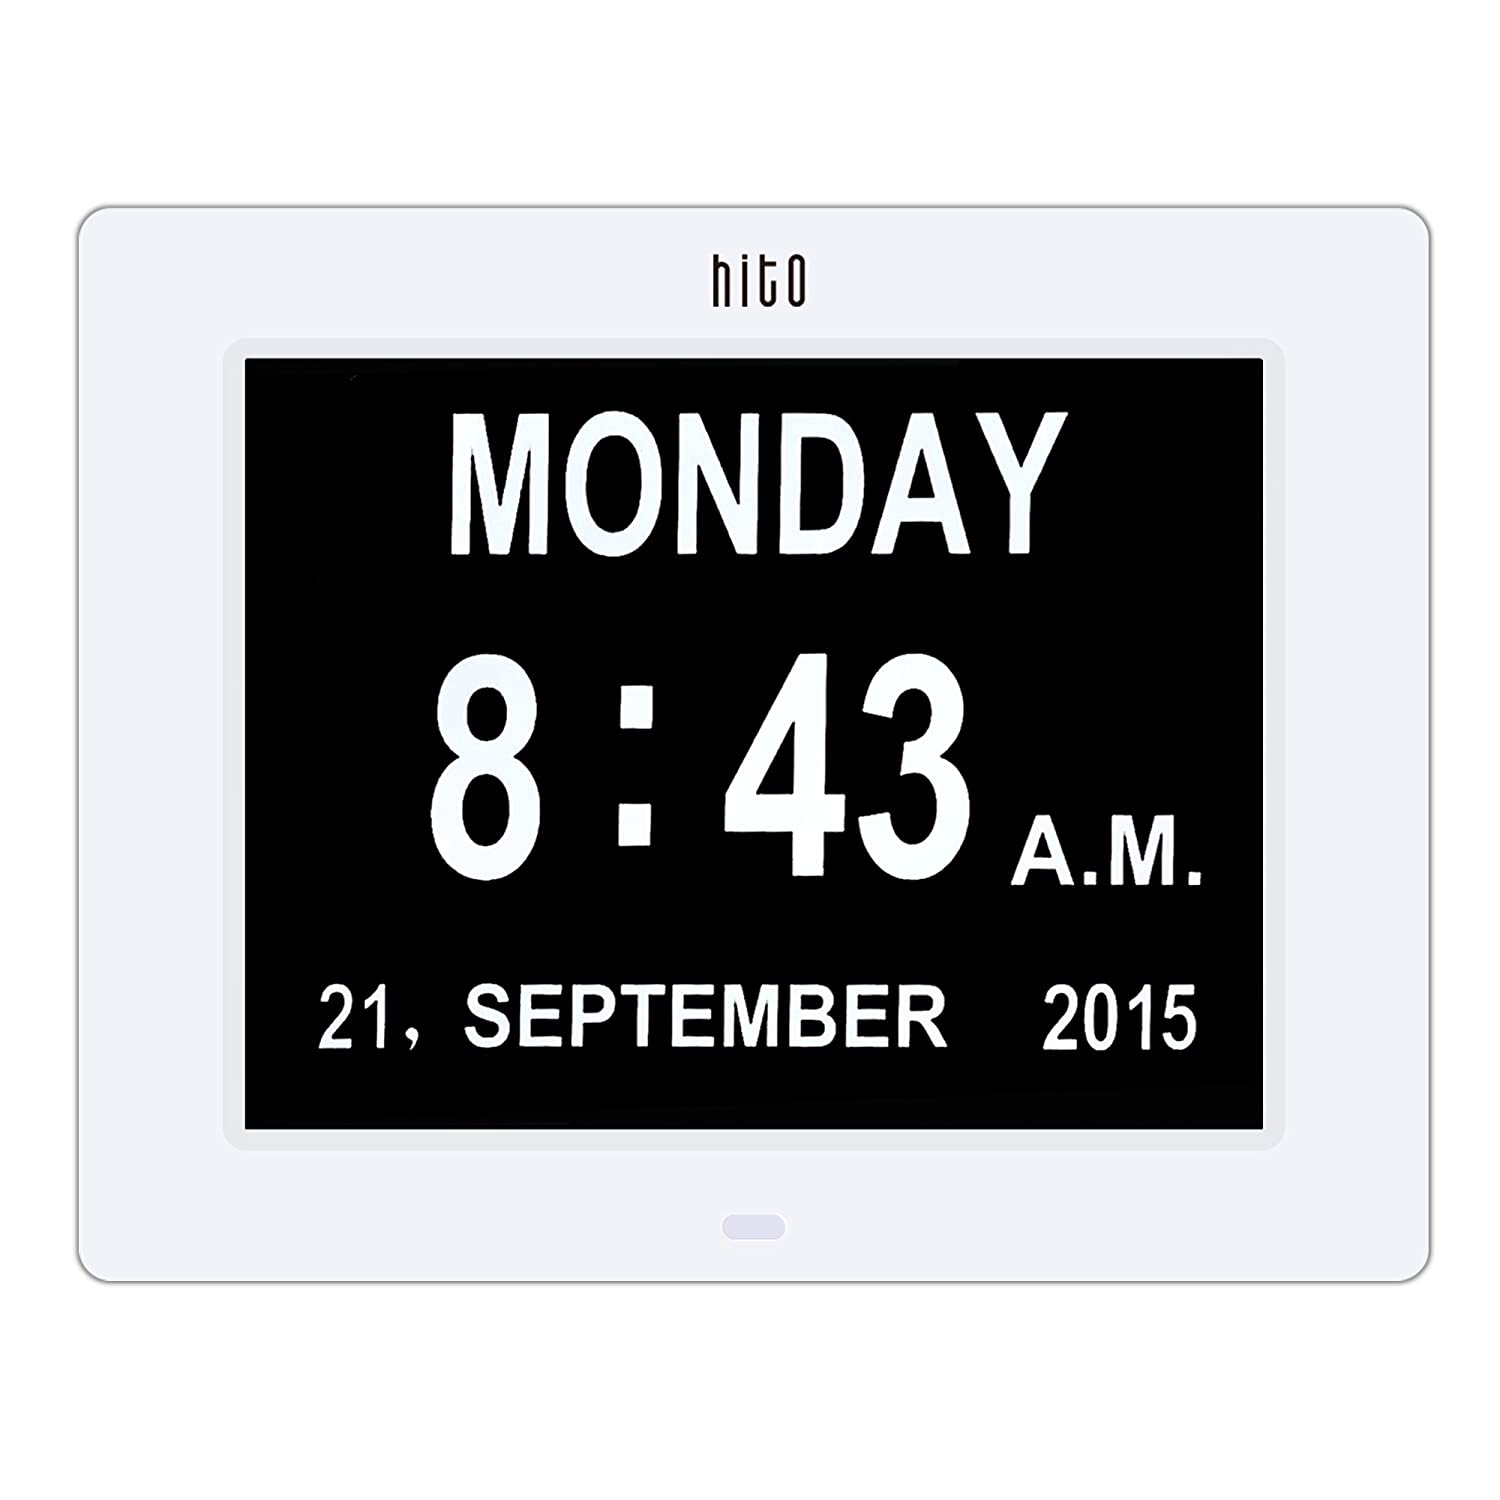 HITO Super Clear Desk Wall Clock w/ Date, Day of the week - 8 1/2 inches (White) hitoseller